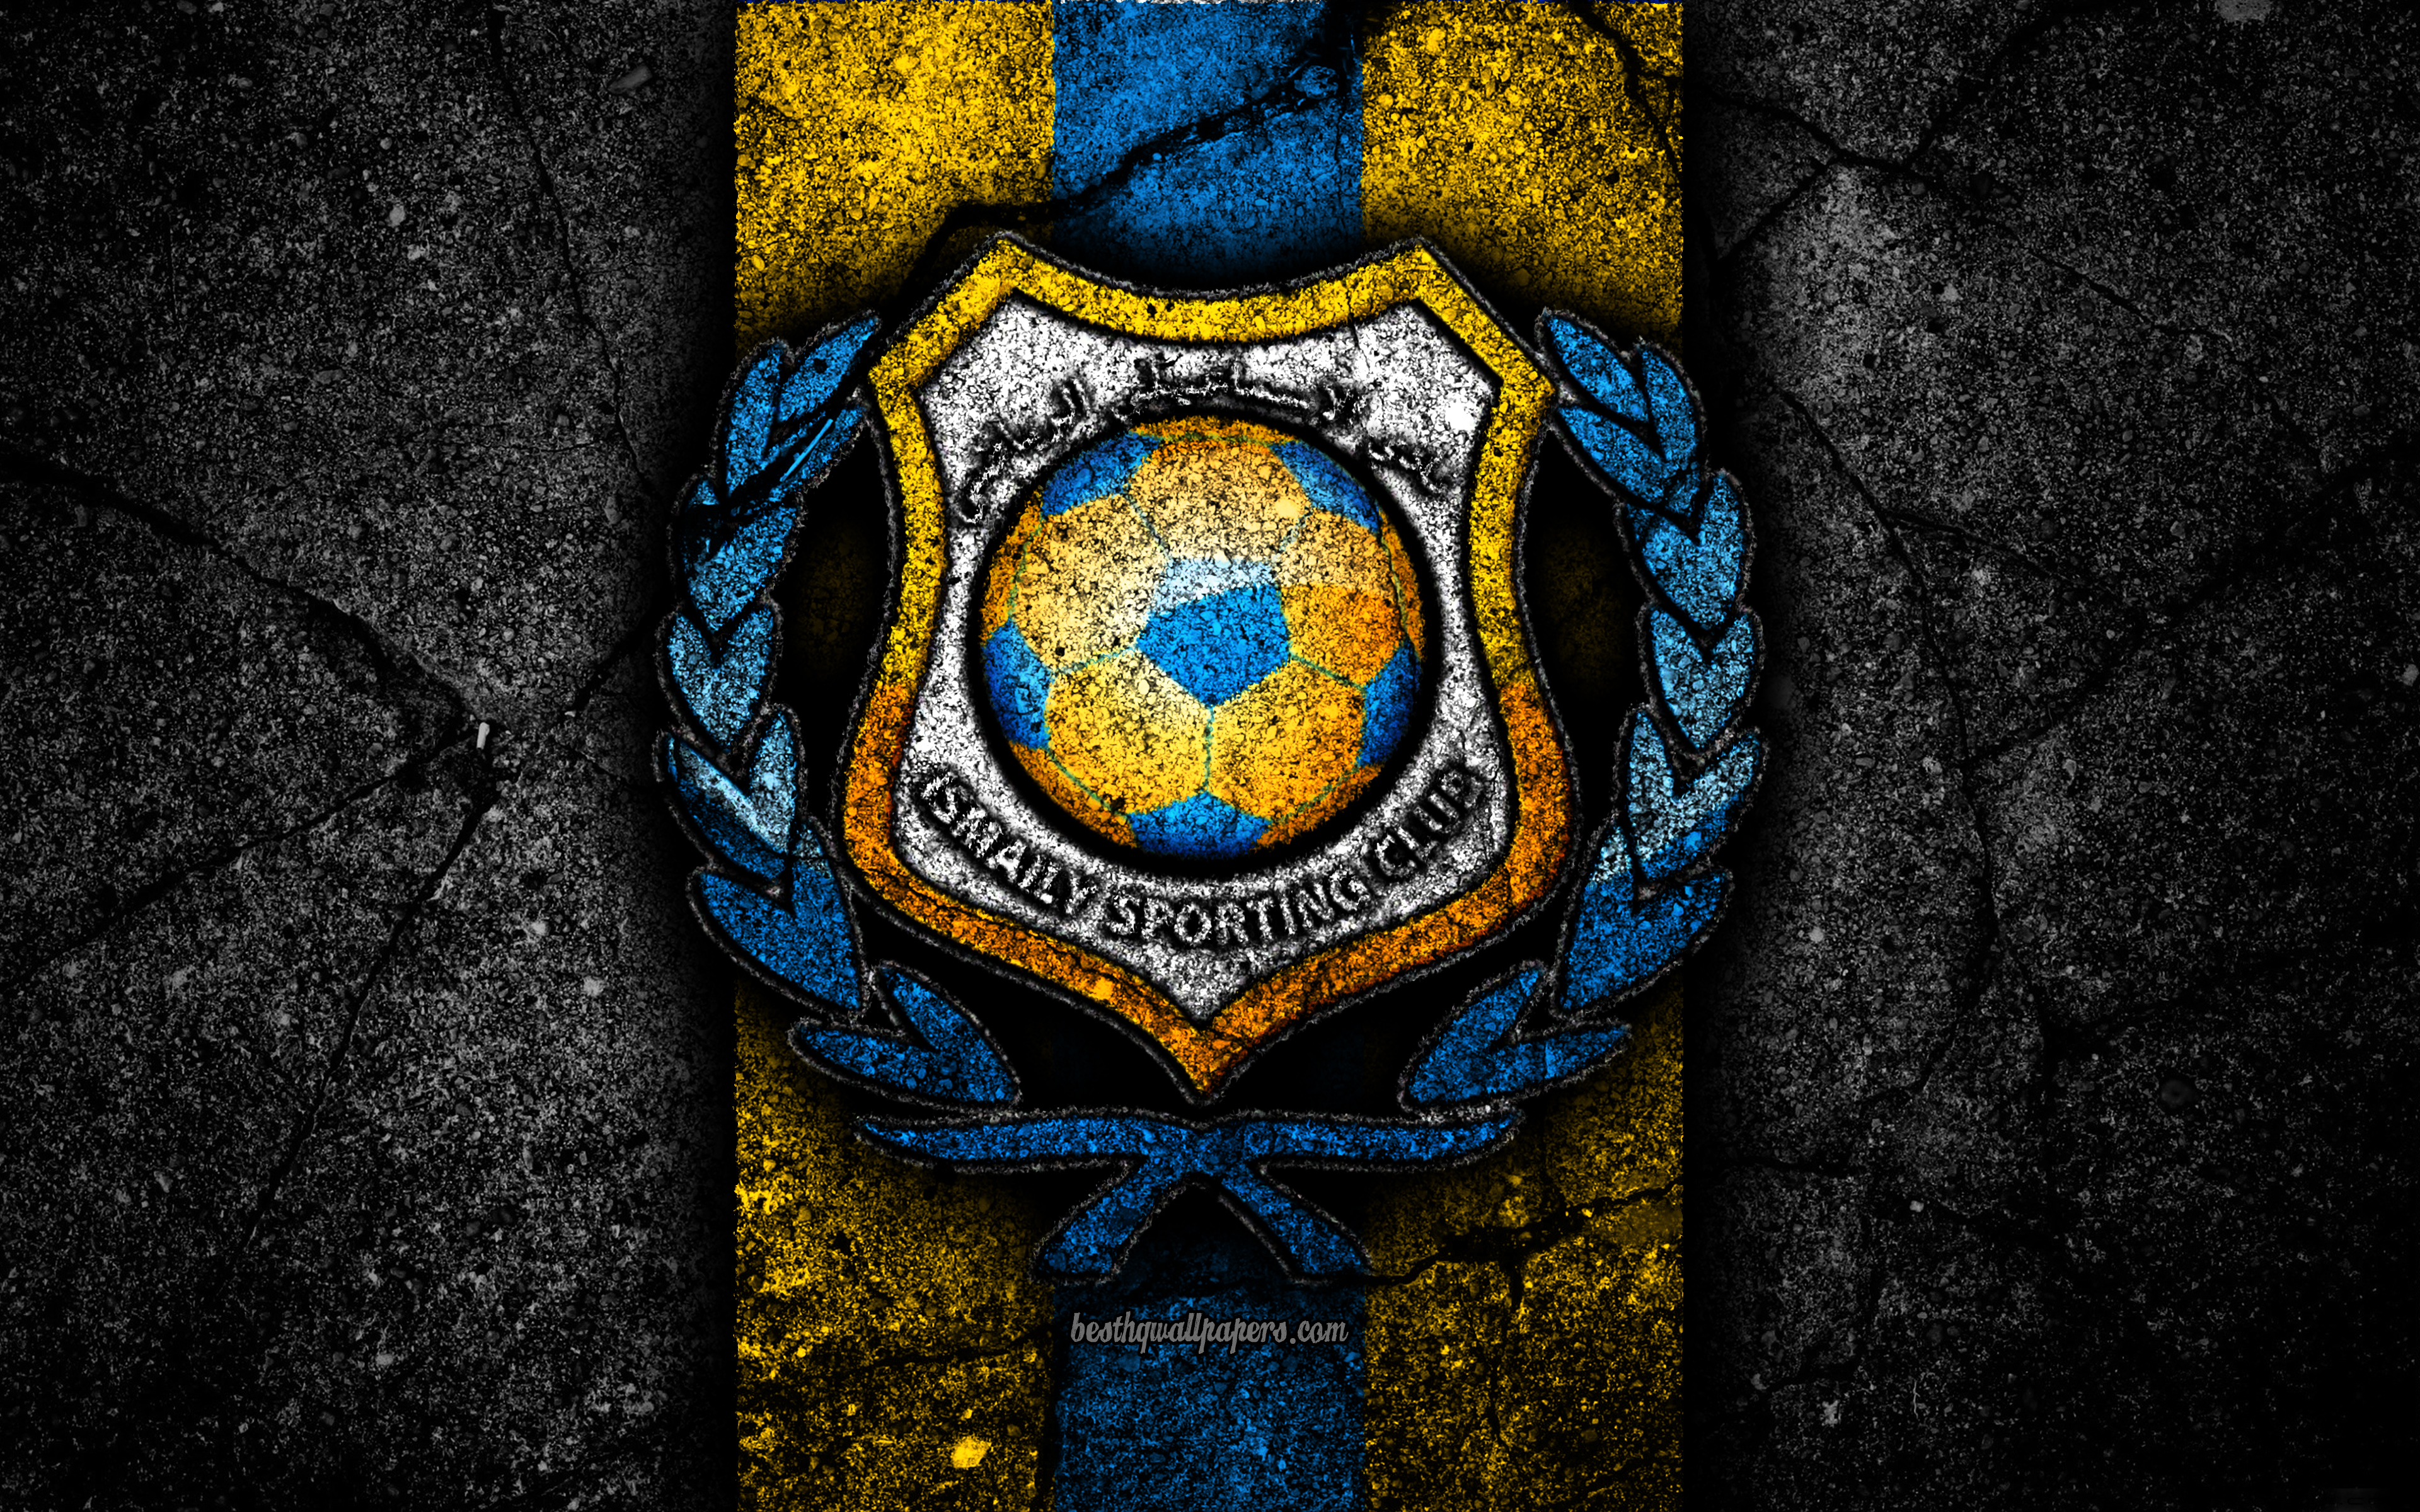 Ismaily SC 4k Ultra HD Wallpaper Background Image 3840x2400 3840x2400